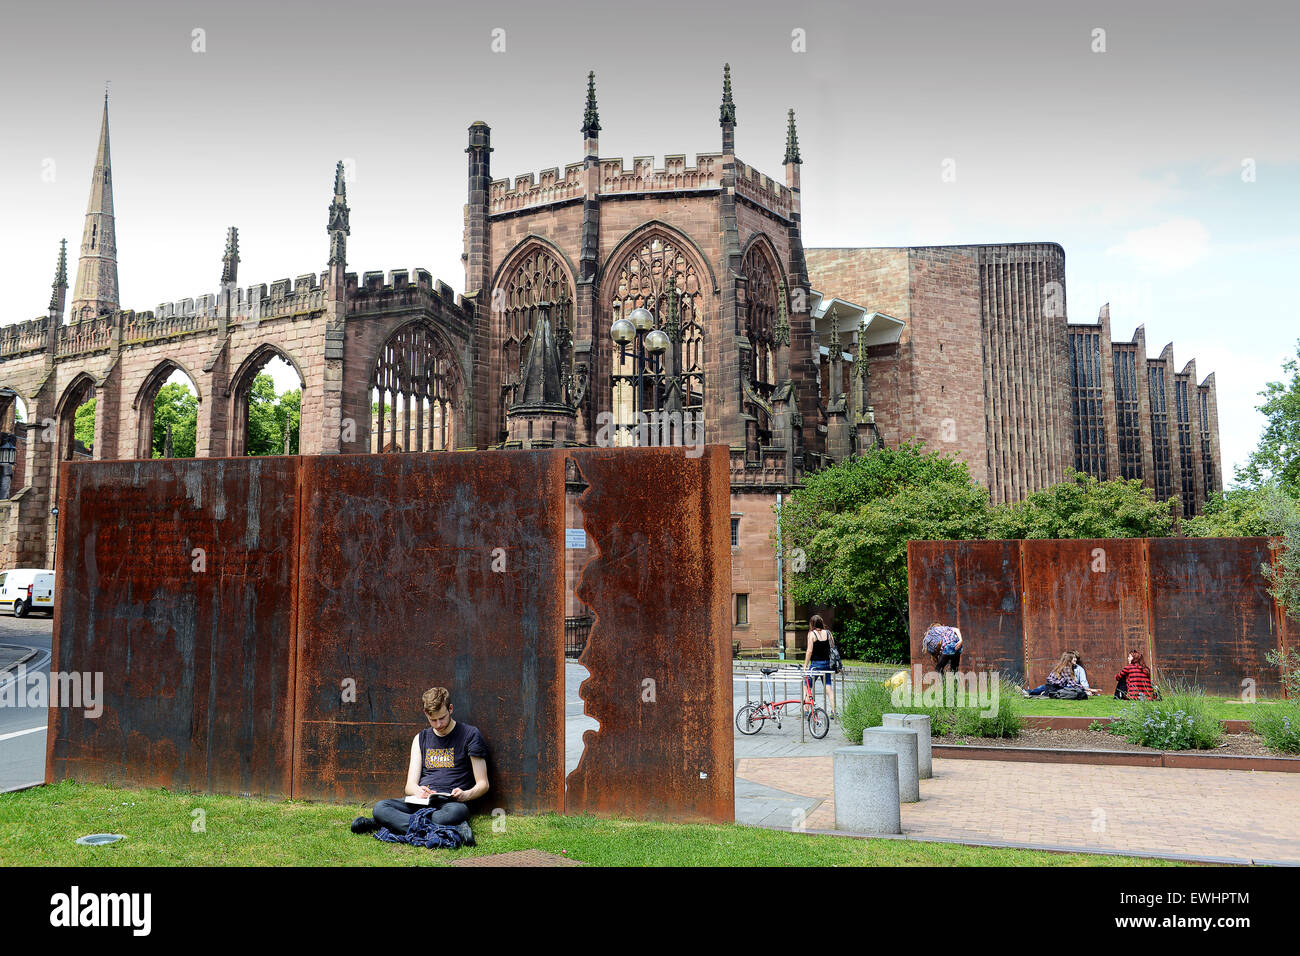 Coventry Cathedral ruins and rust and steel from the Herbert Art Gallery UK - Stock Image